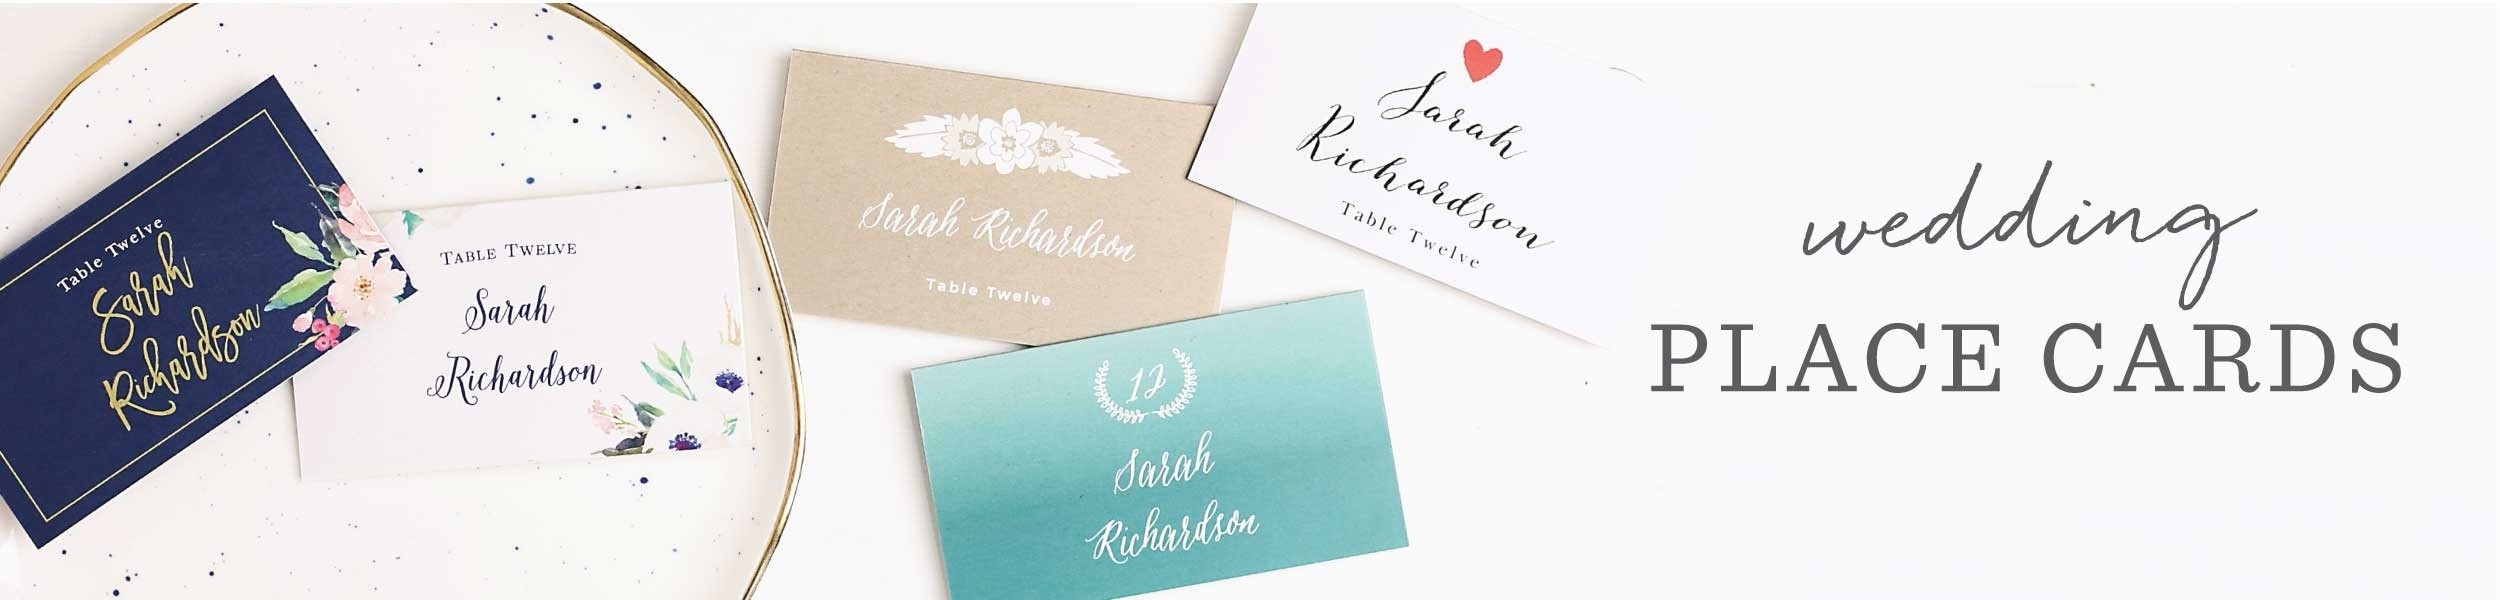 Wedding Place Cards   Free Guest Name Printing! - Basic Invite - Free Printable Damask Place Cards